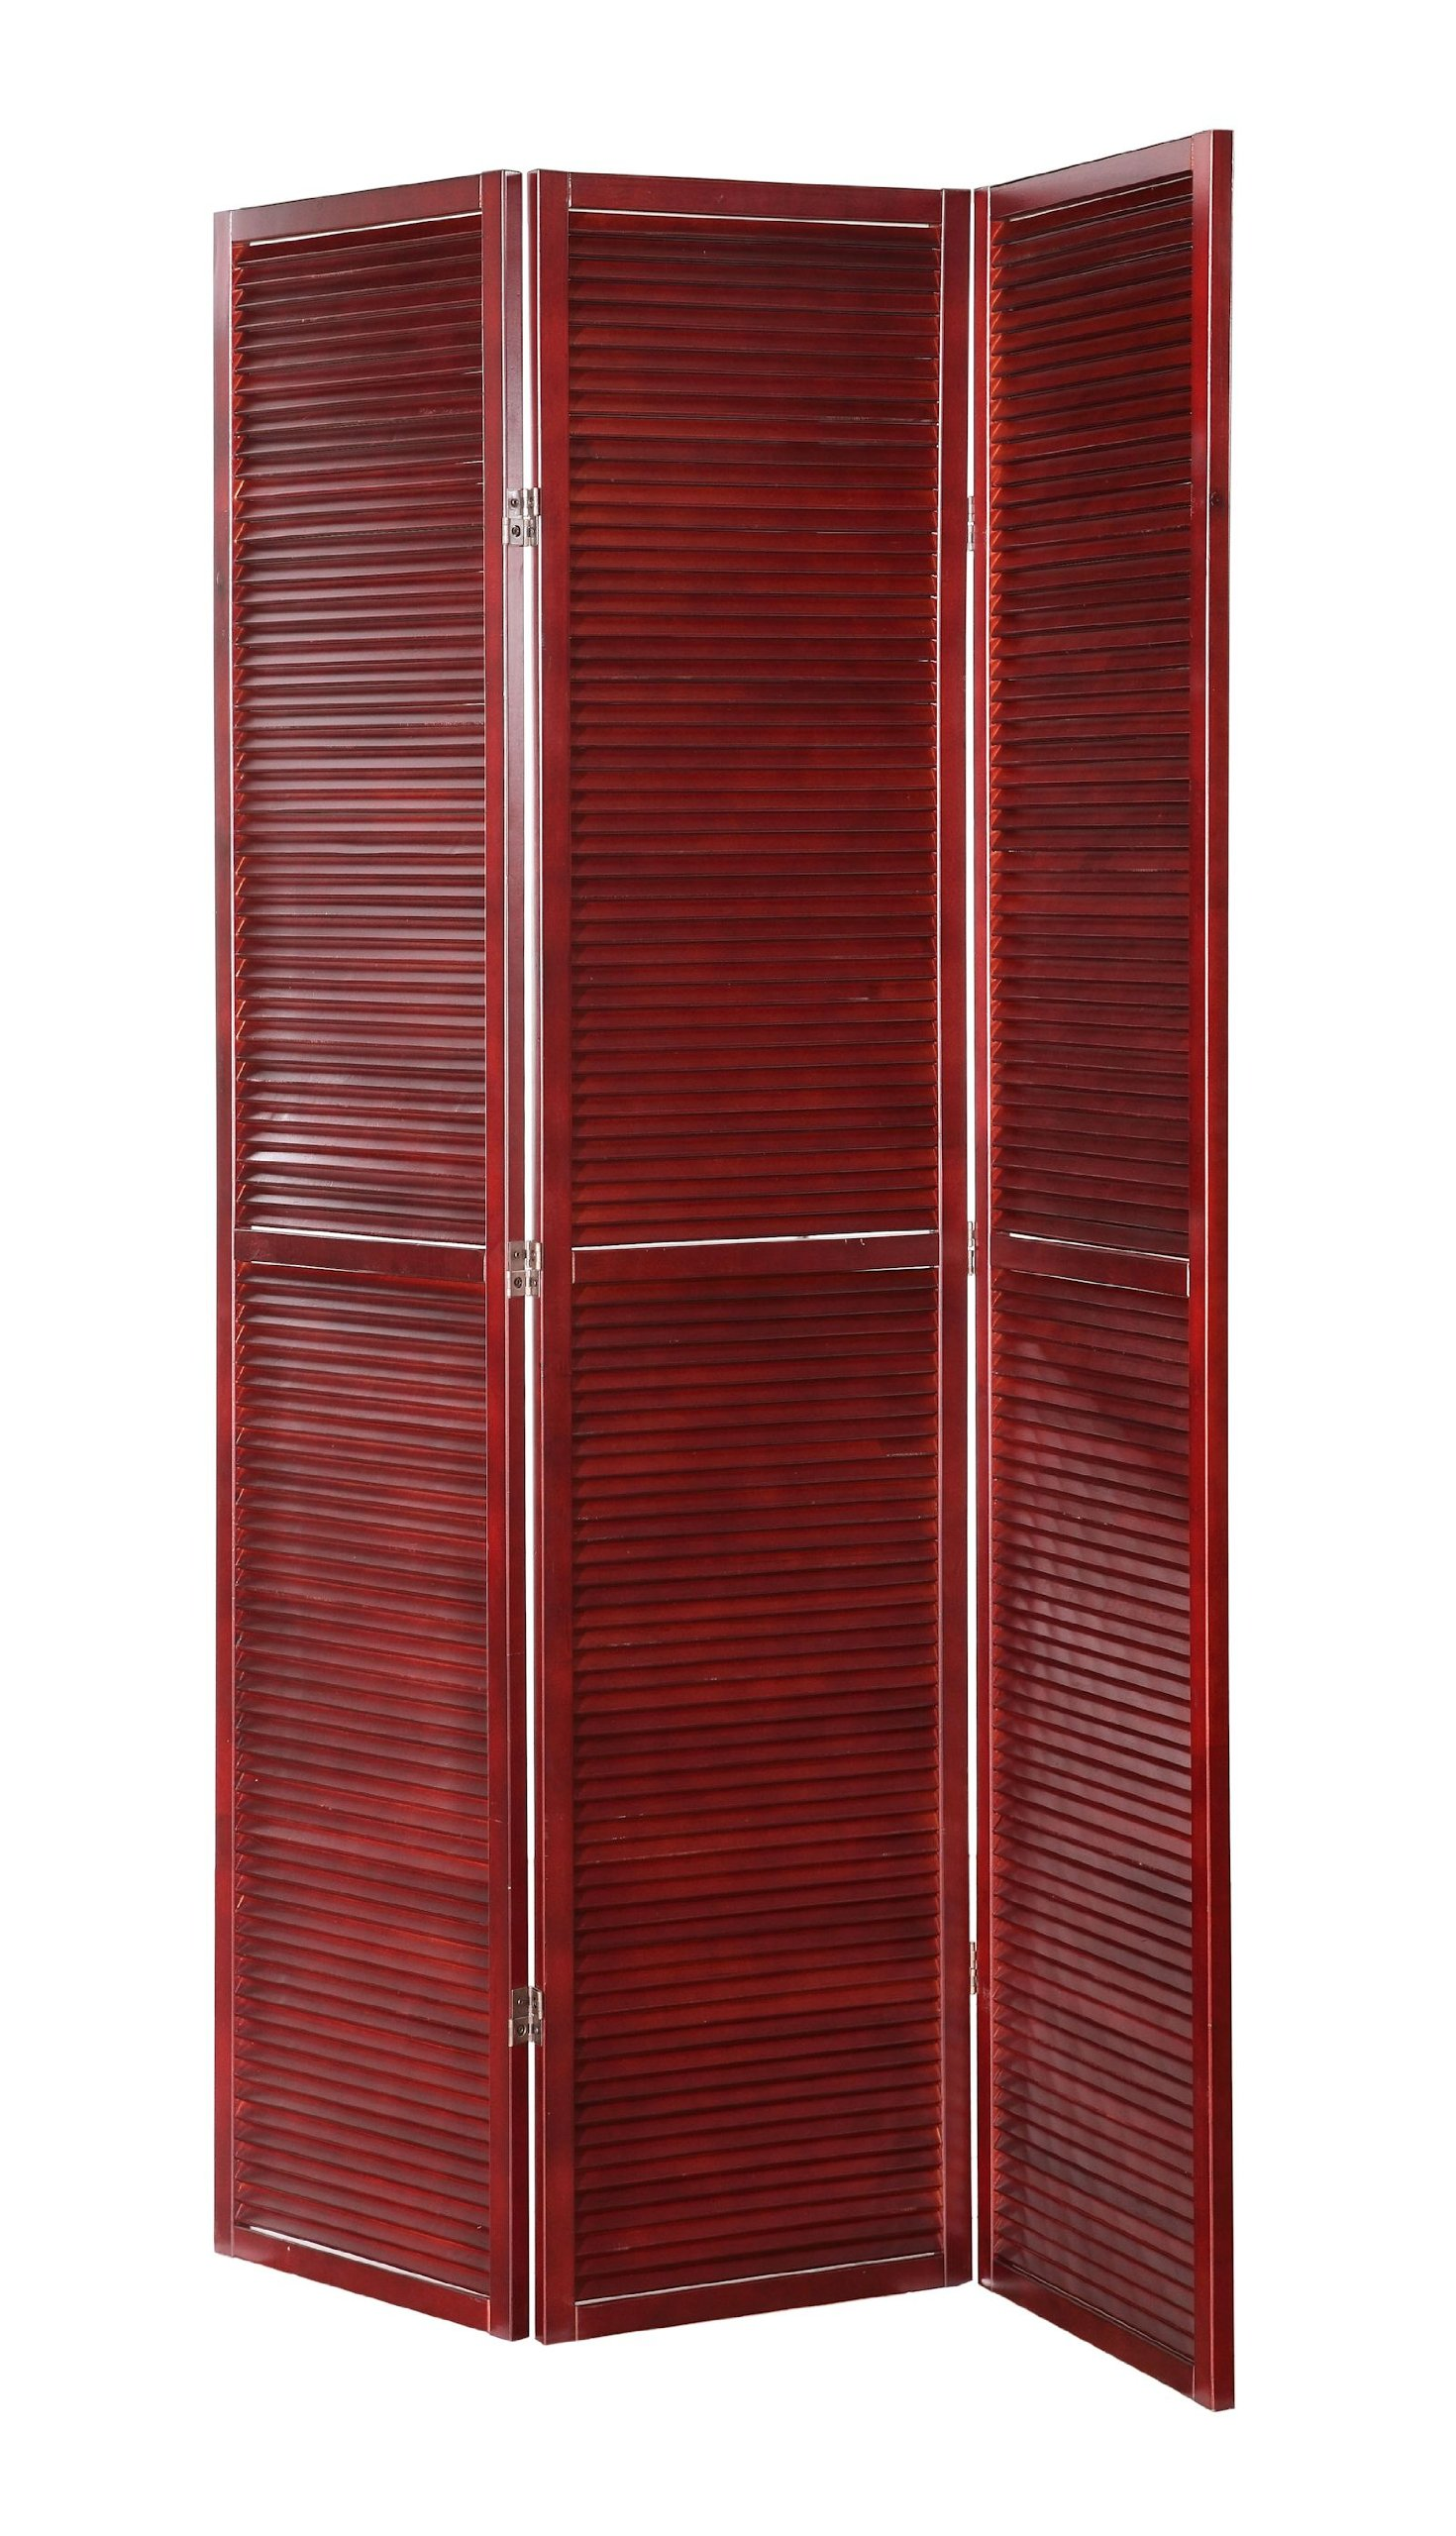 Legacy Decor 3 Panel Solid Wood Shutter Accordion Screen Room Divider in a Cherry Finish